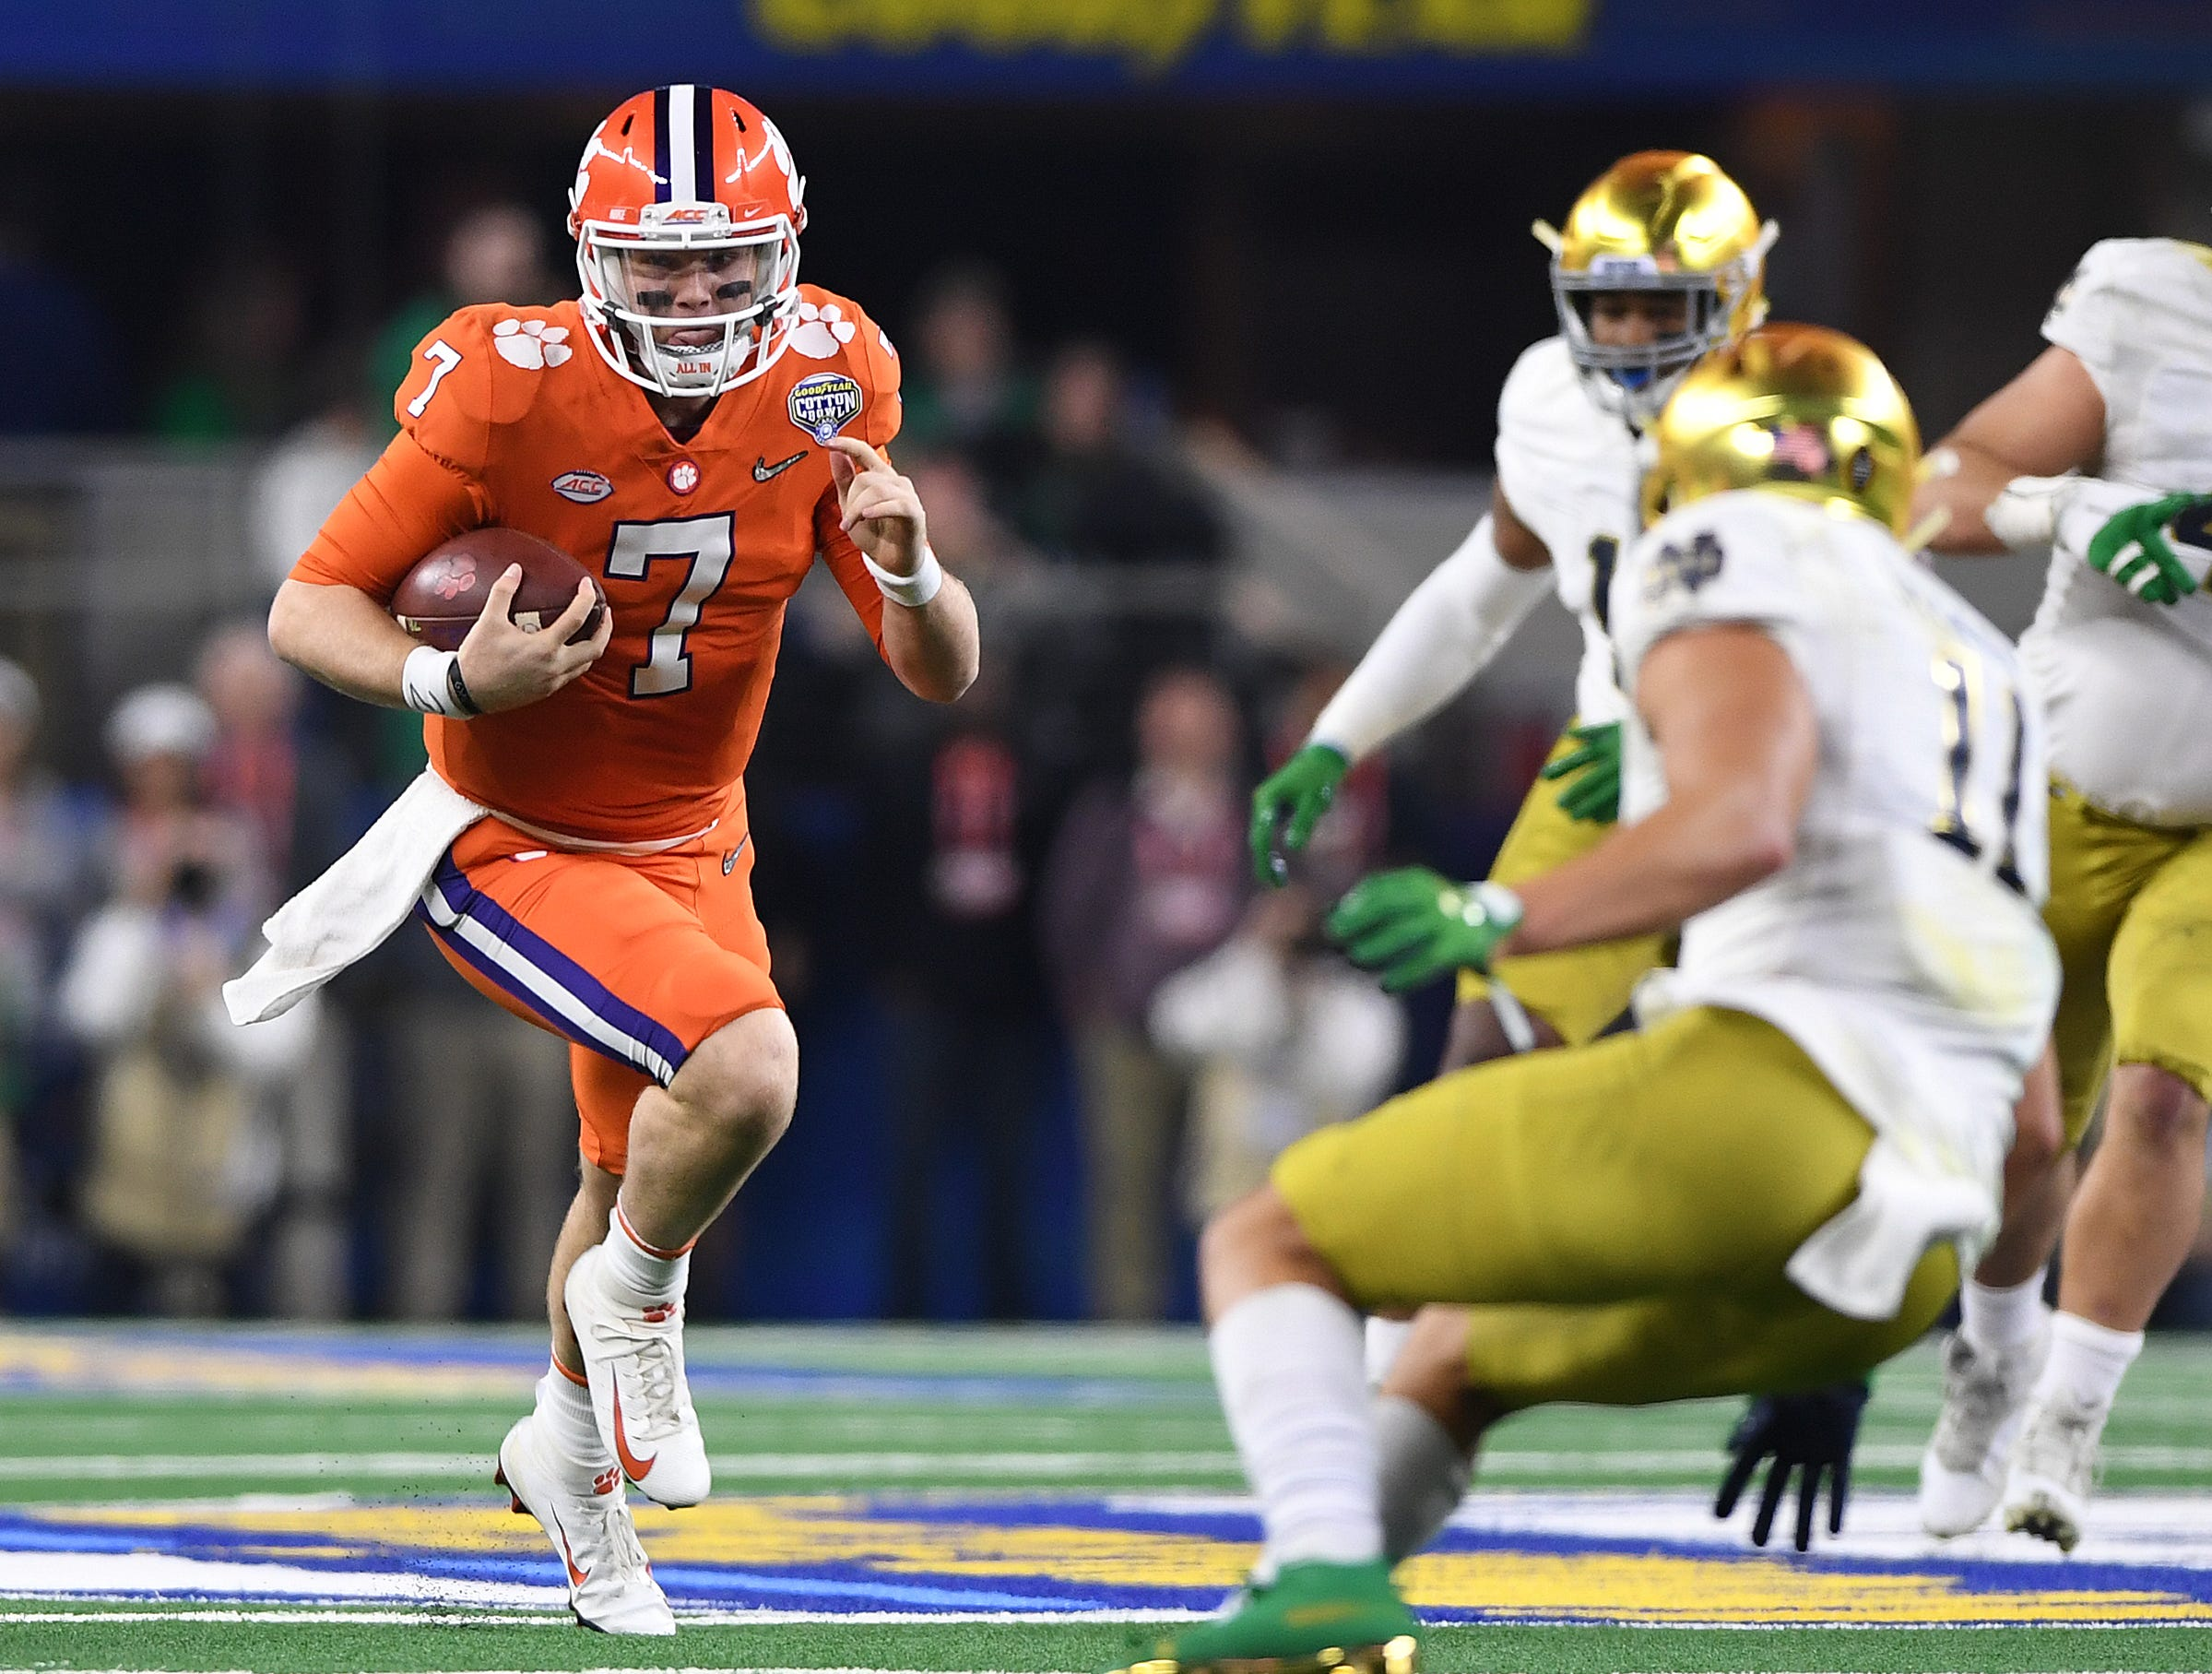 Clemson quarterback Chase Brice (7) carries against Notre Dame during the 4th quarter of the Goodyear Cotton Bowl at AT&T stadium in Arlington, TX Saturday, December 29, 2018.